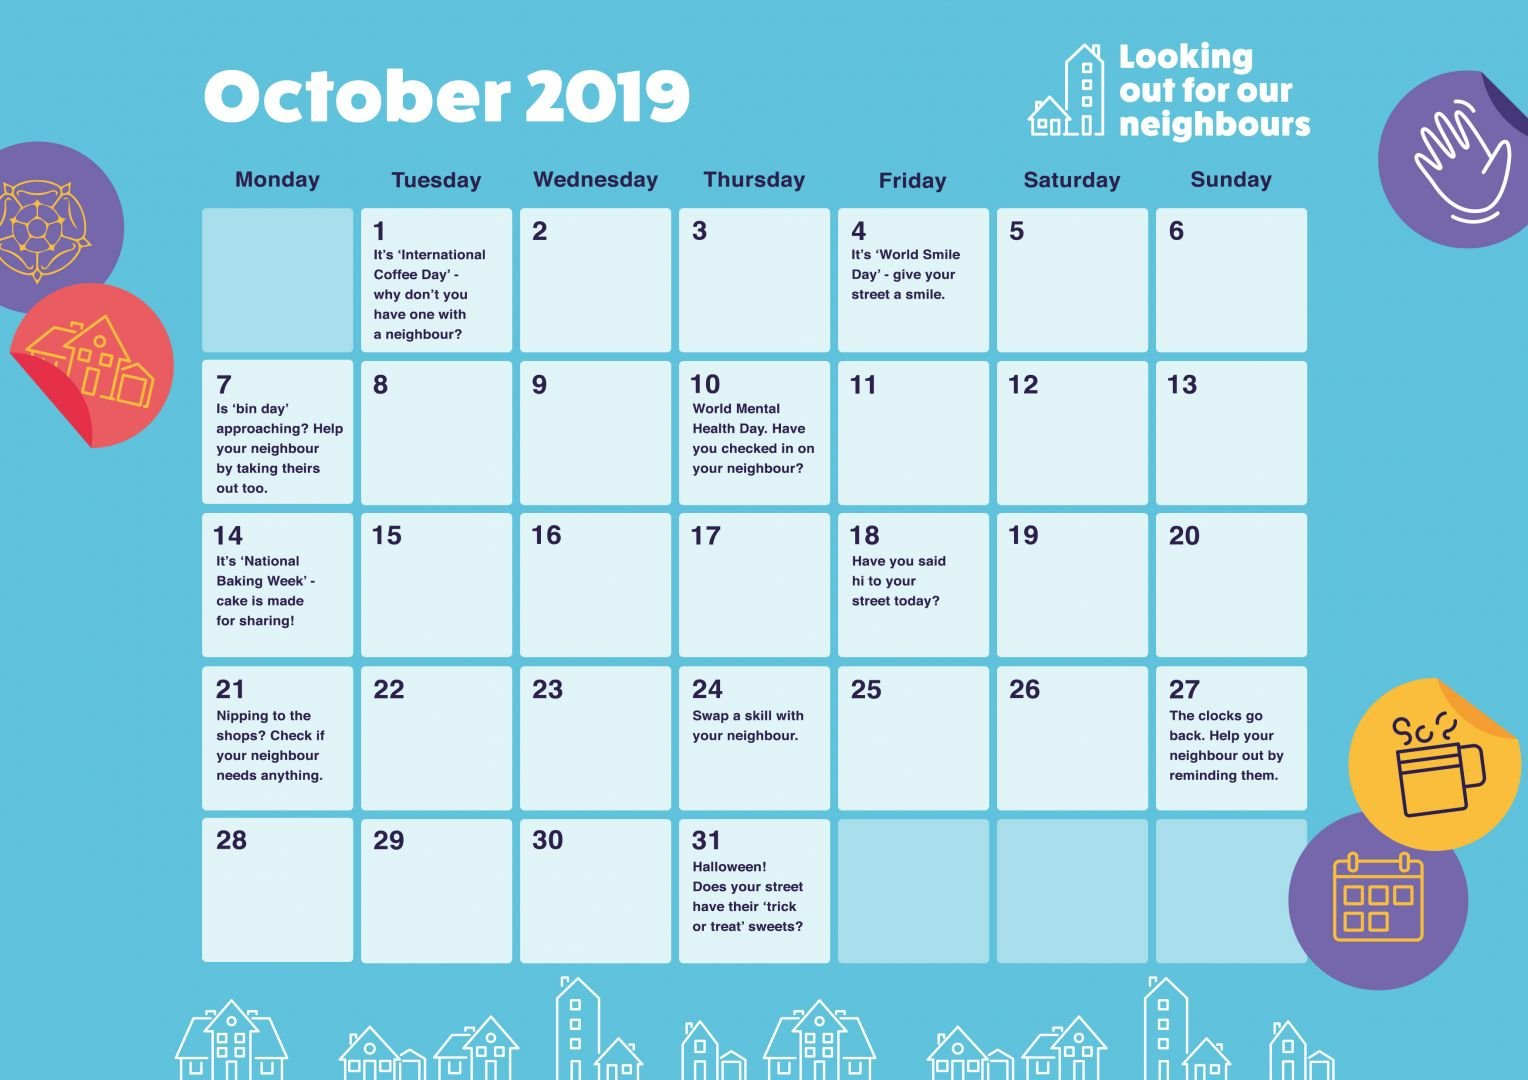 Looking out for our neighbours - October activities calendar